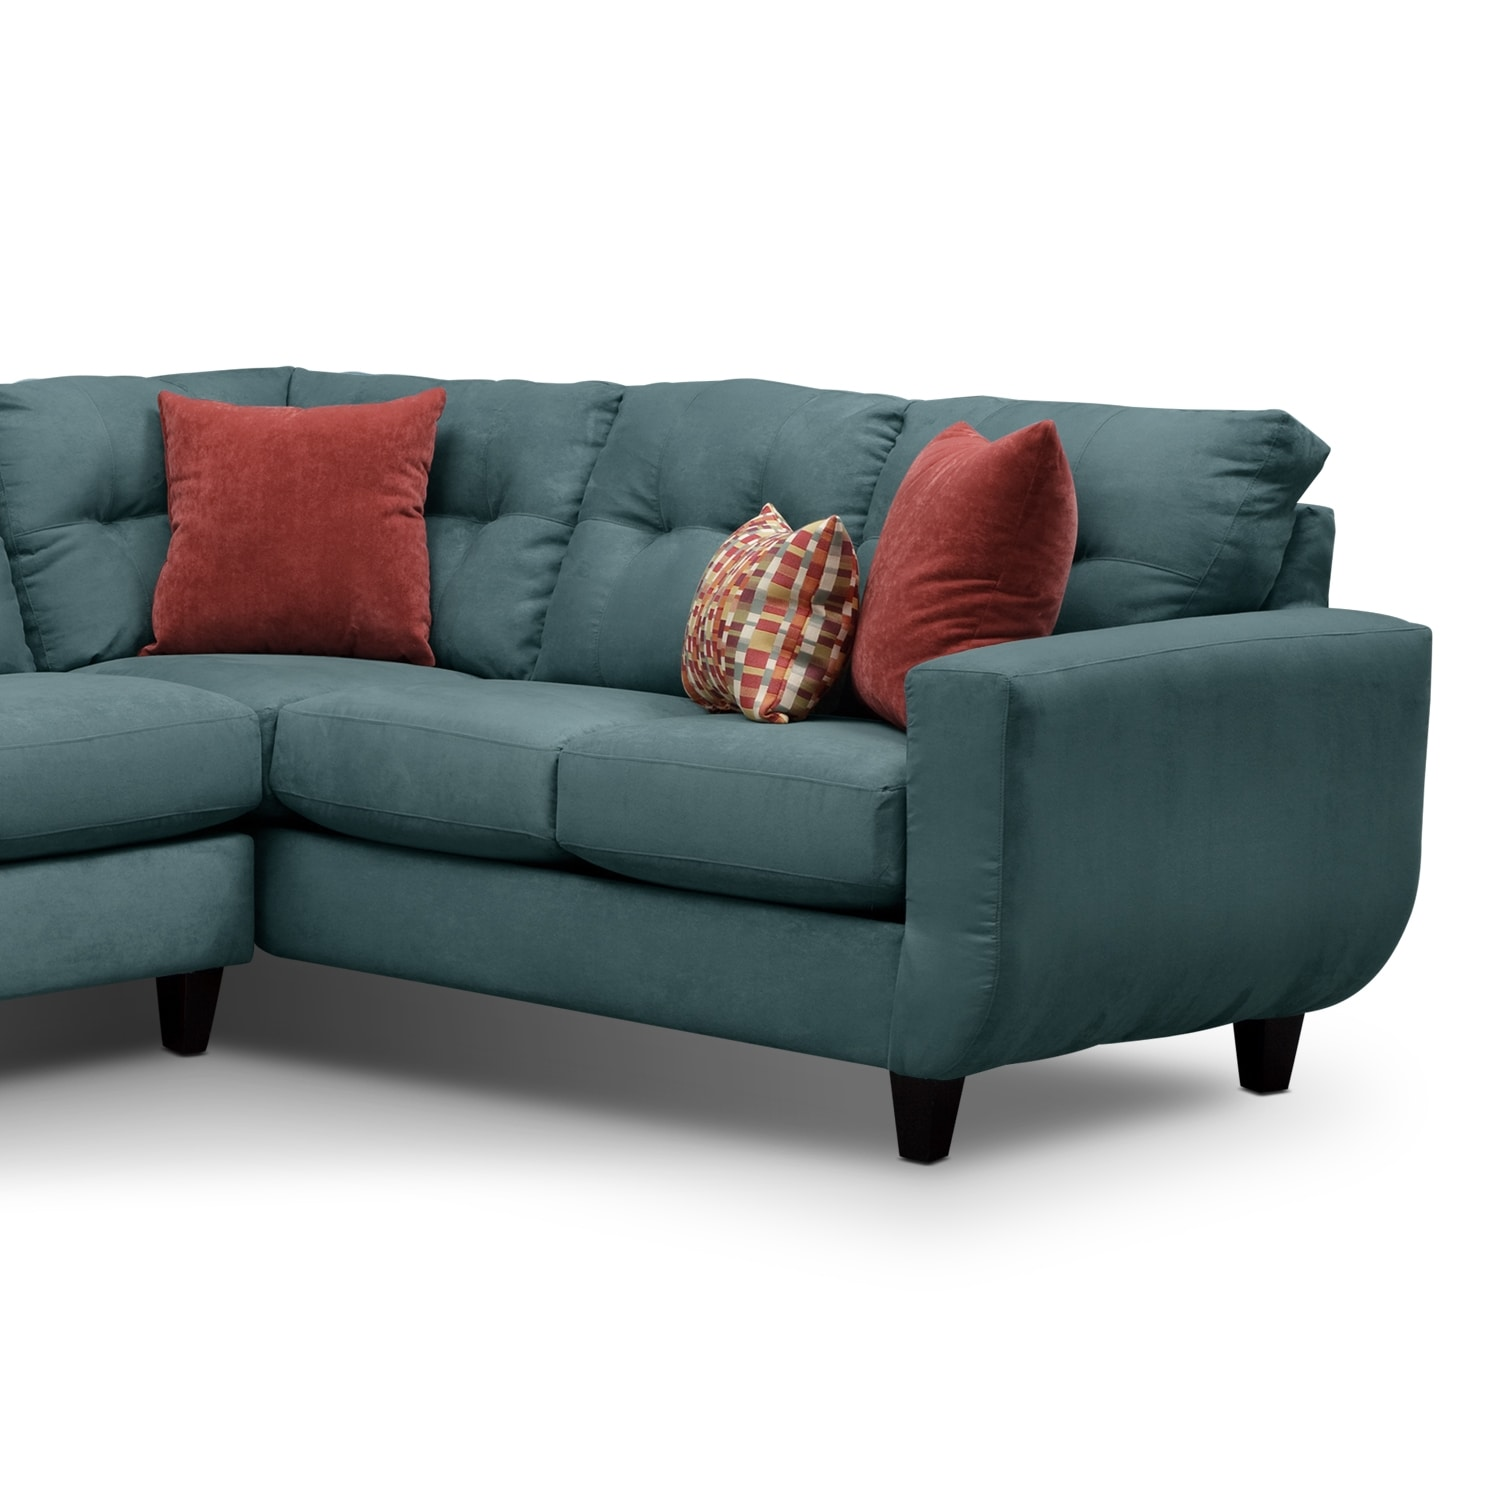 West Village Blue Ii Upholstery 2 Pc Sectional Value City Furniture